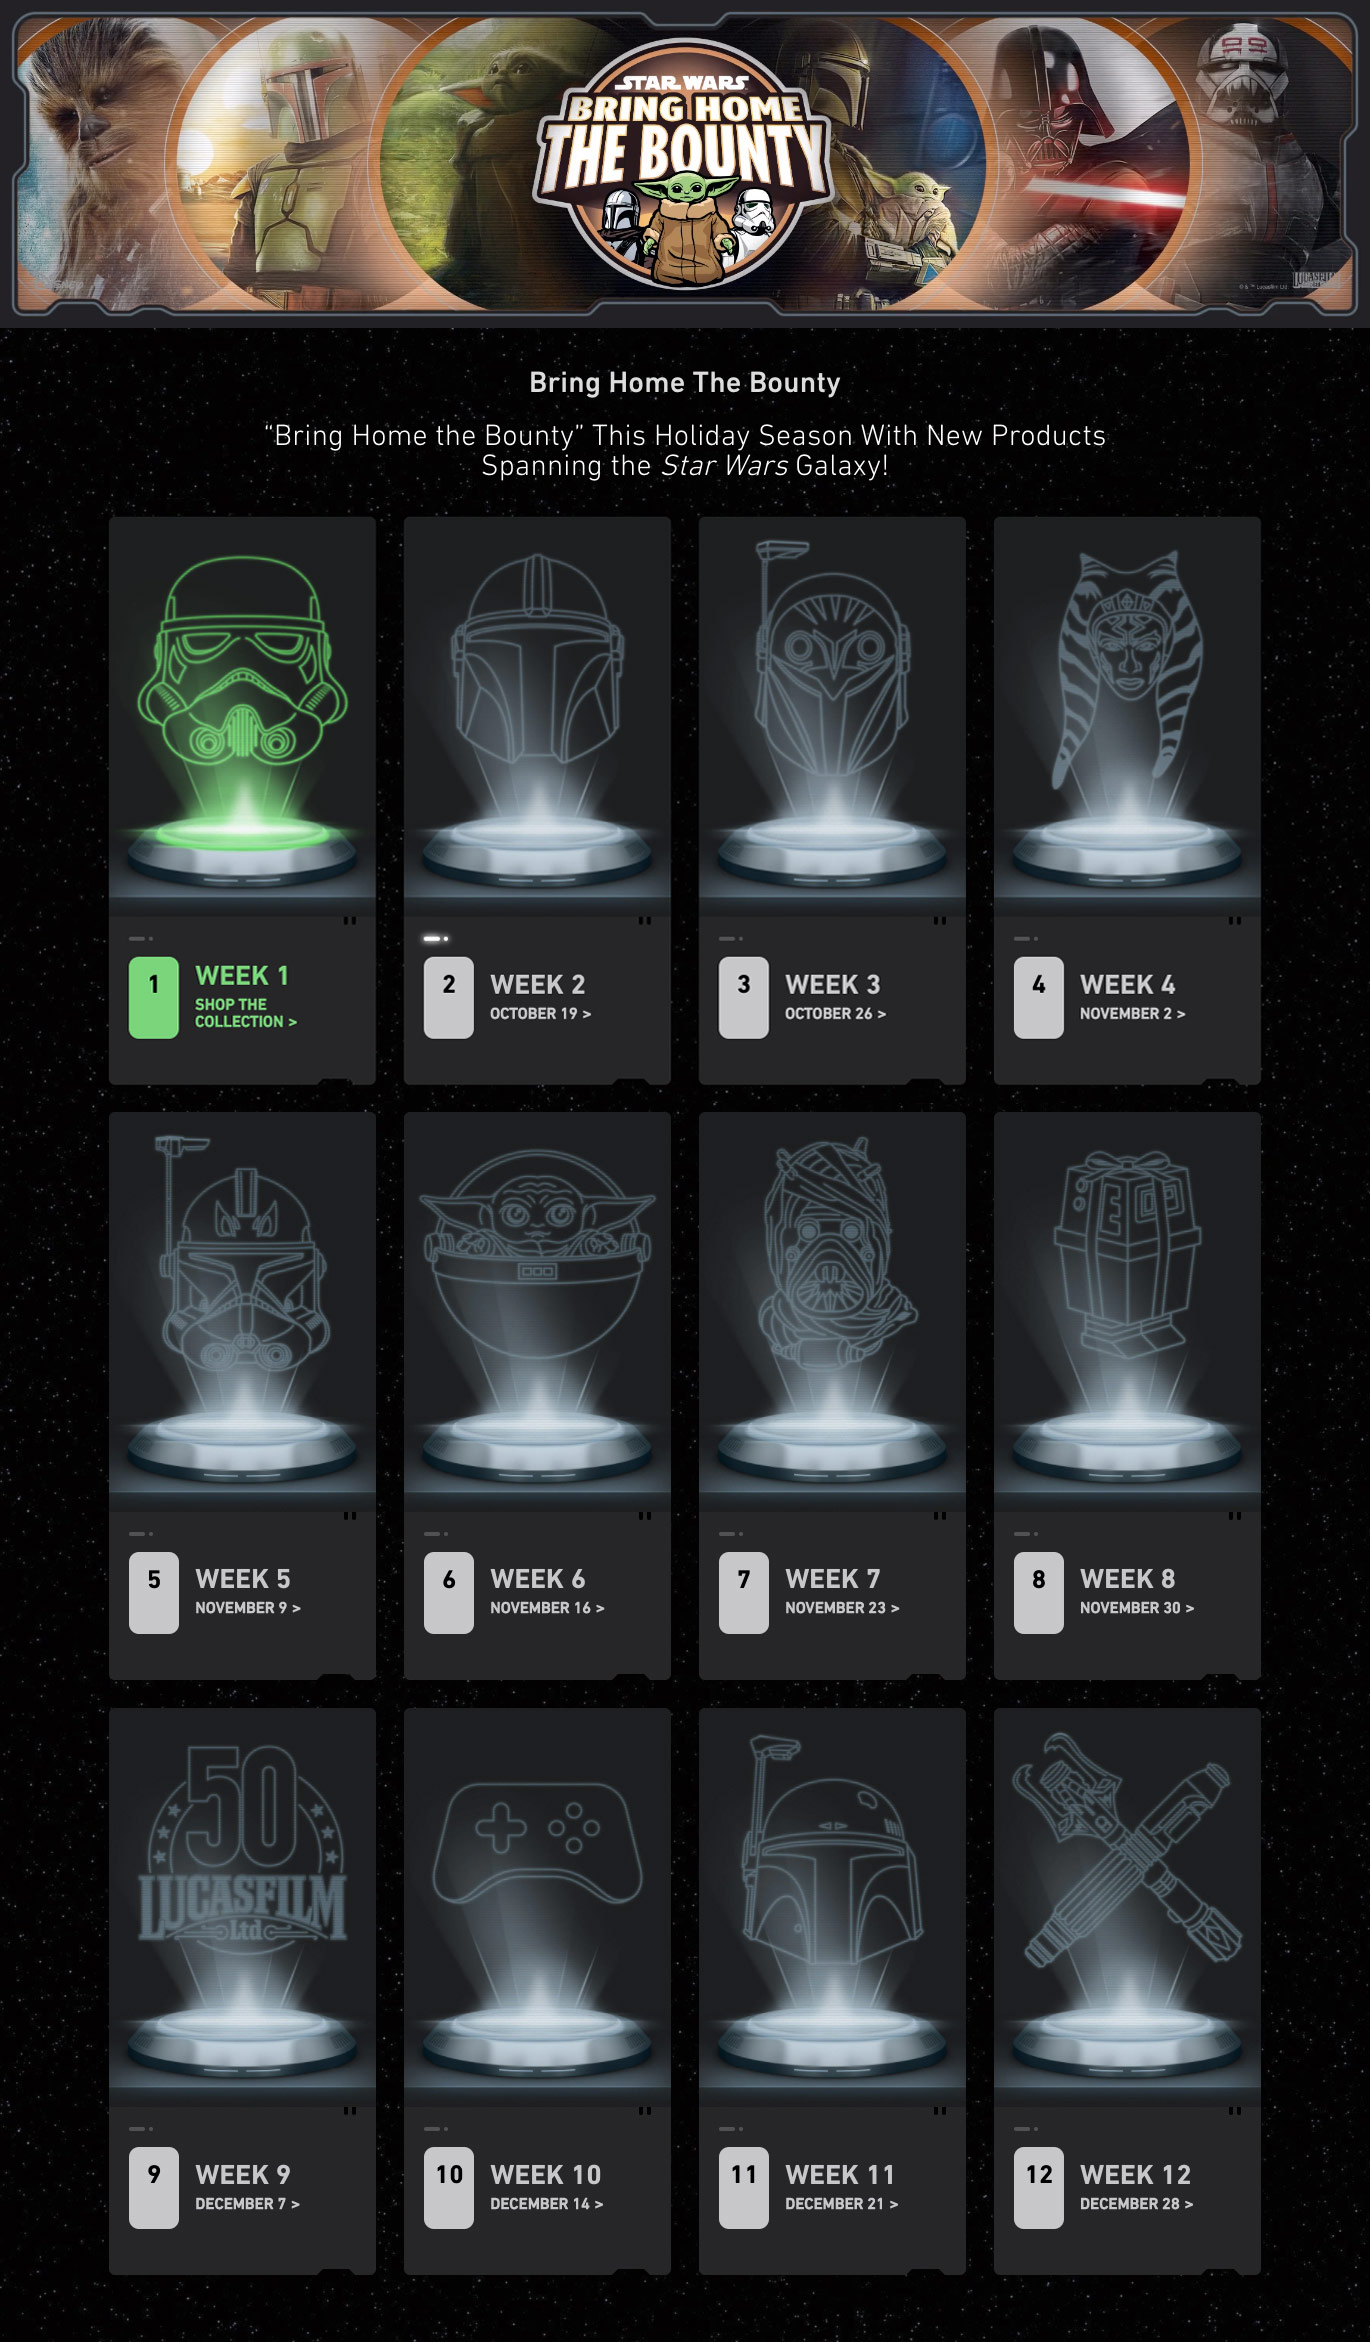 Bring Home The Bounty collection page